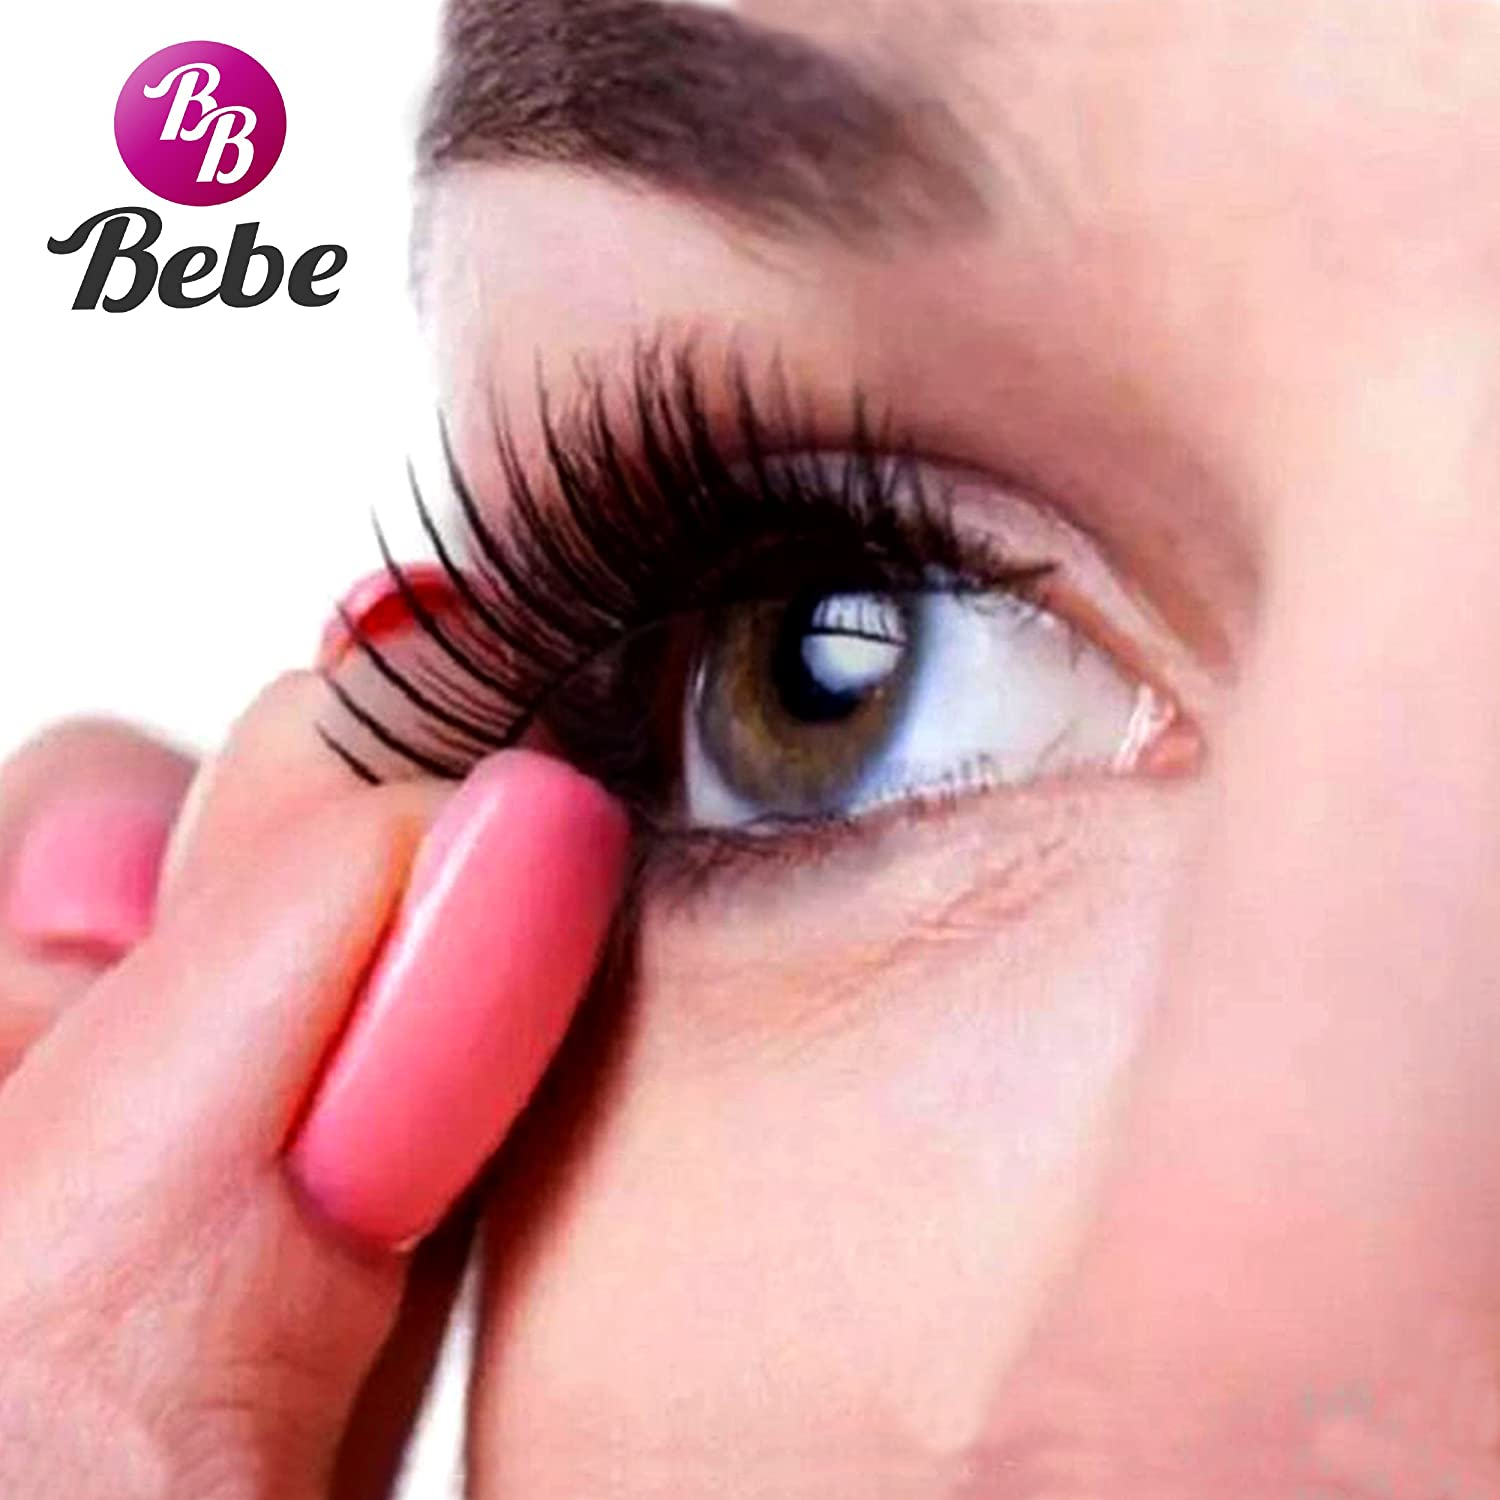 dc0d01e496c BeBe 3D Deluxe Magnetic False Eyelashes - INCLUDES FREE MIRRORBOOK AIR  Compact Mirror Ultra Thin Reusable Premium Extension Lashes No Glue For  Natural ...